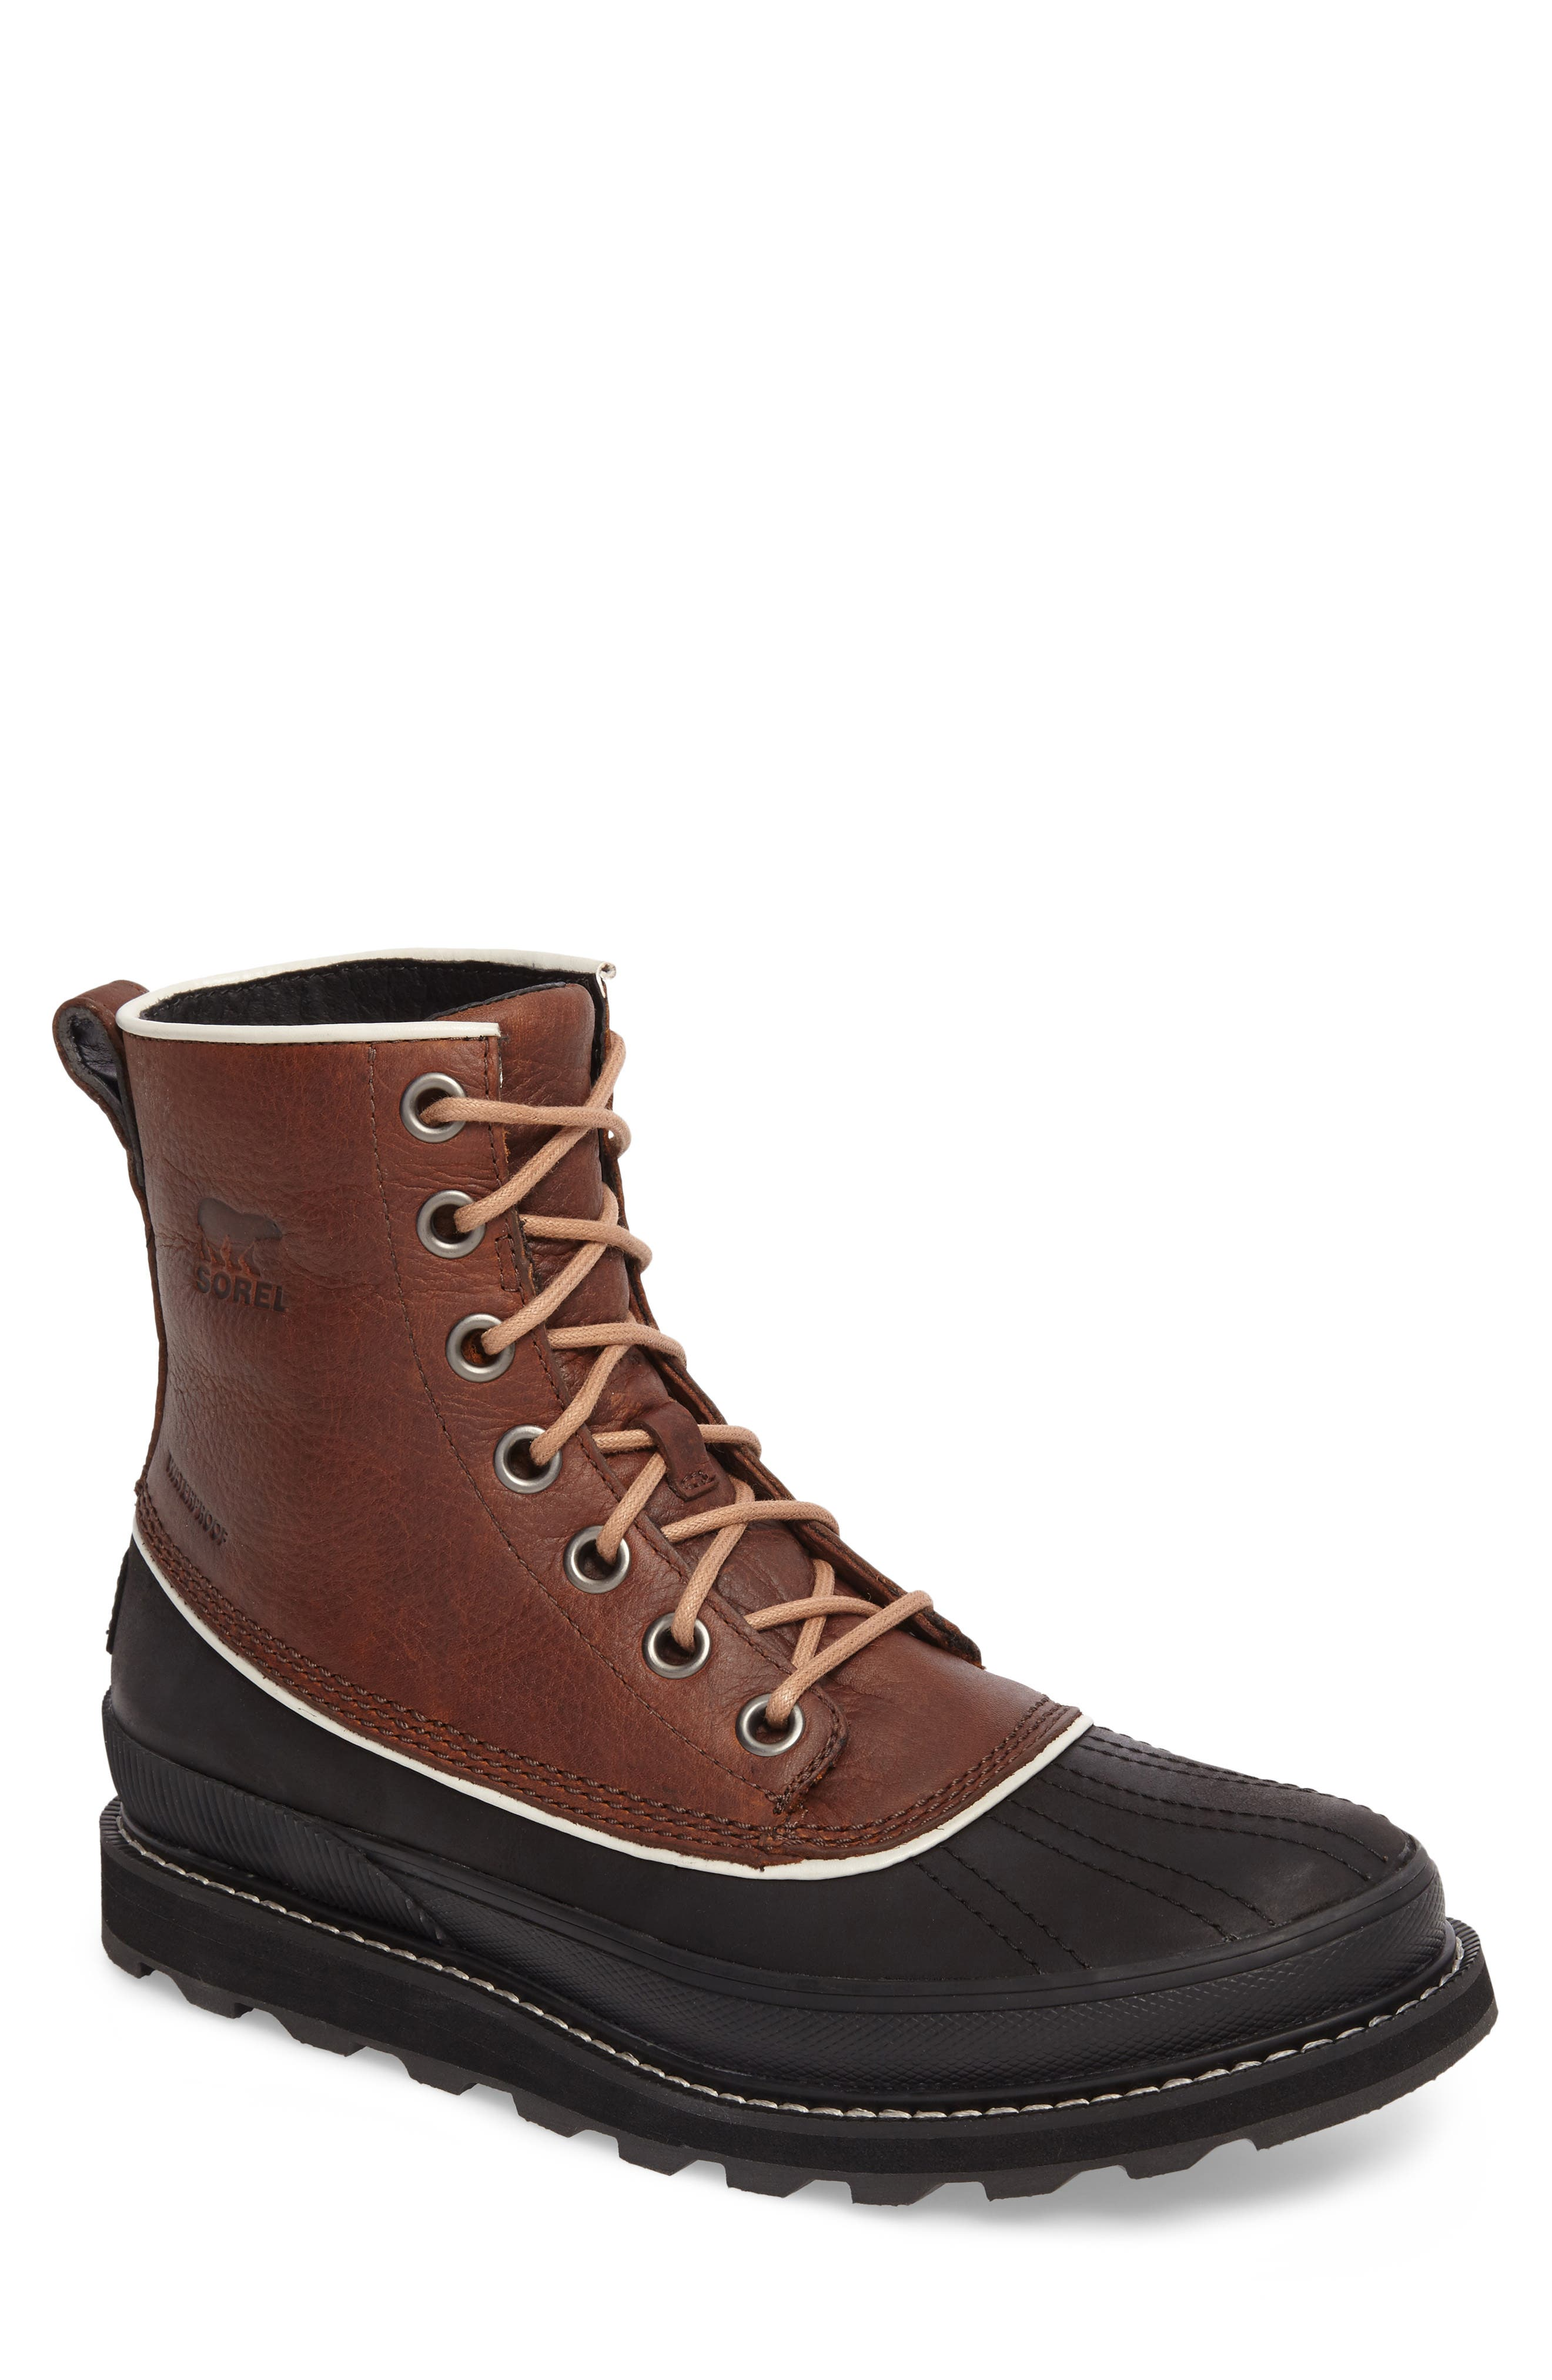 Madson 1964 Waterproof Boot,                         Main,                         color, 200